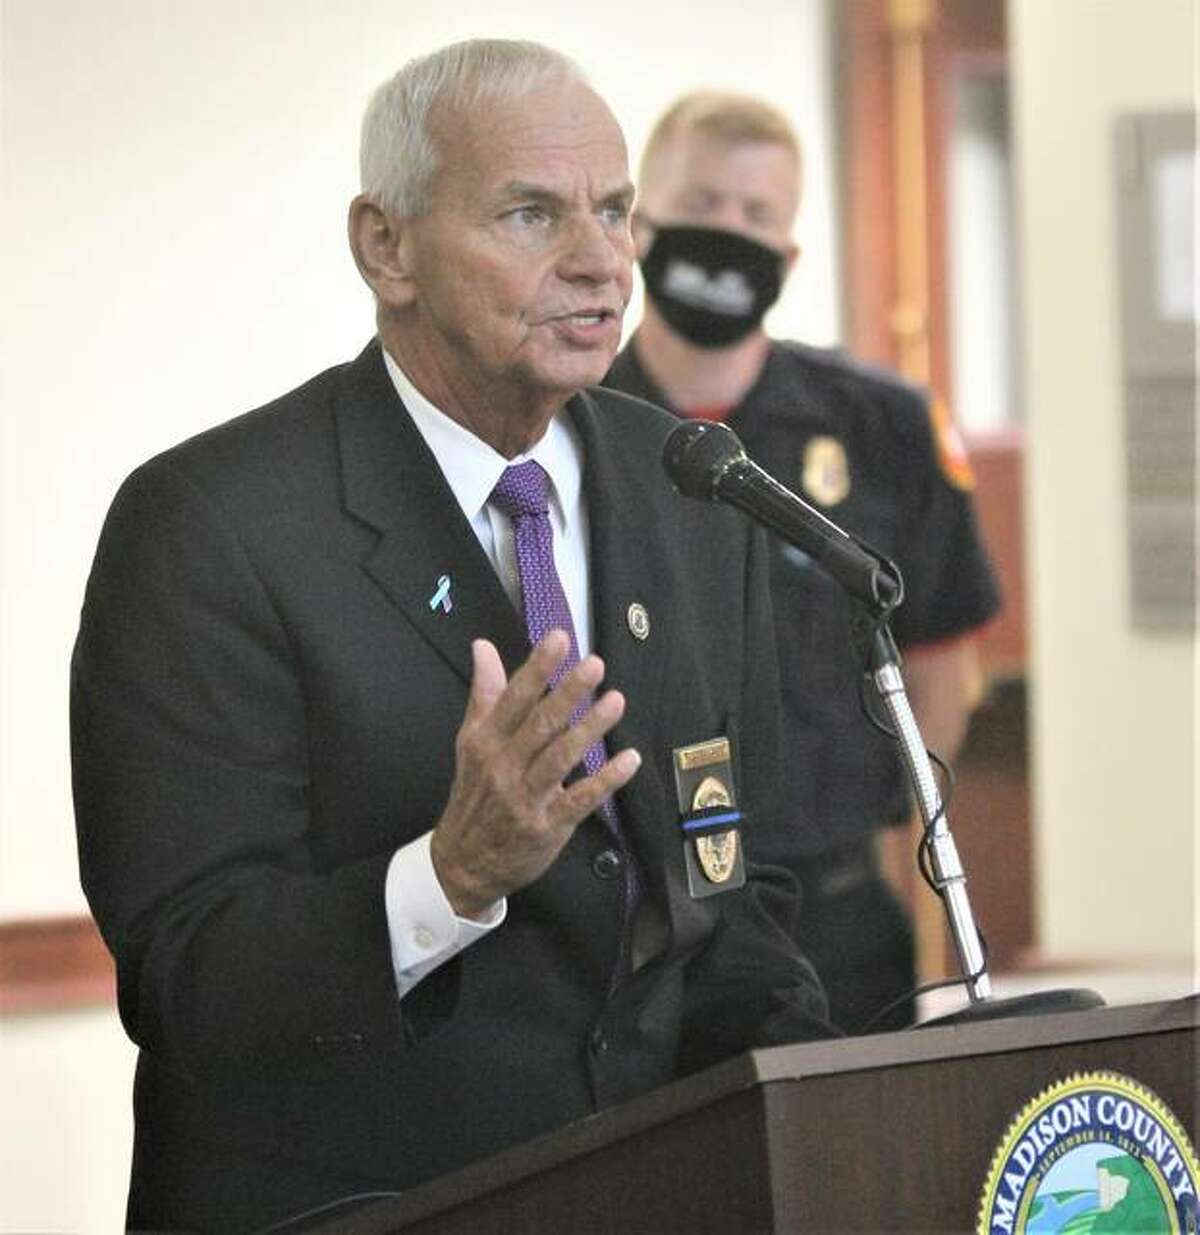 Madison County Coroner Steve Nonn speaks at a National Suicide Prevention Awareness Prevention Month event Friday in the Madison County Administration Building in Edwardsville.